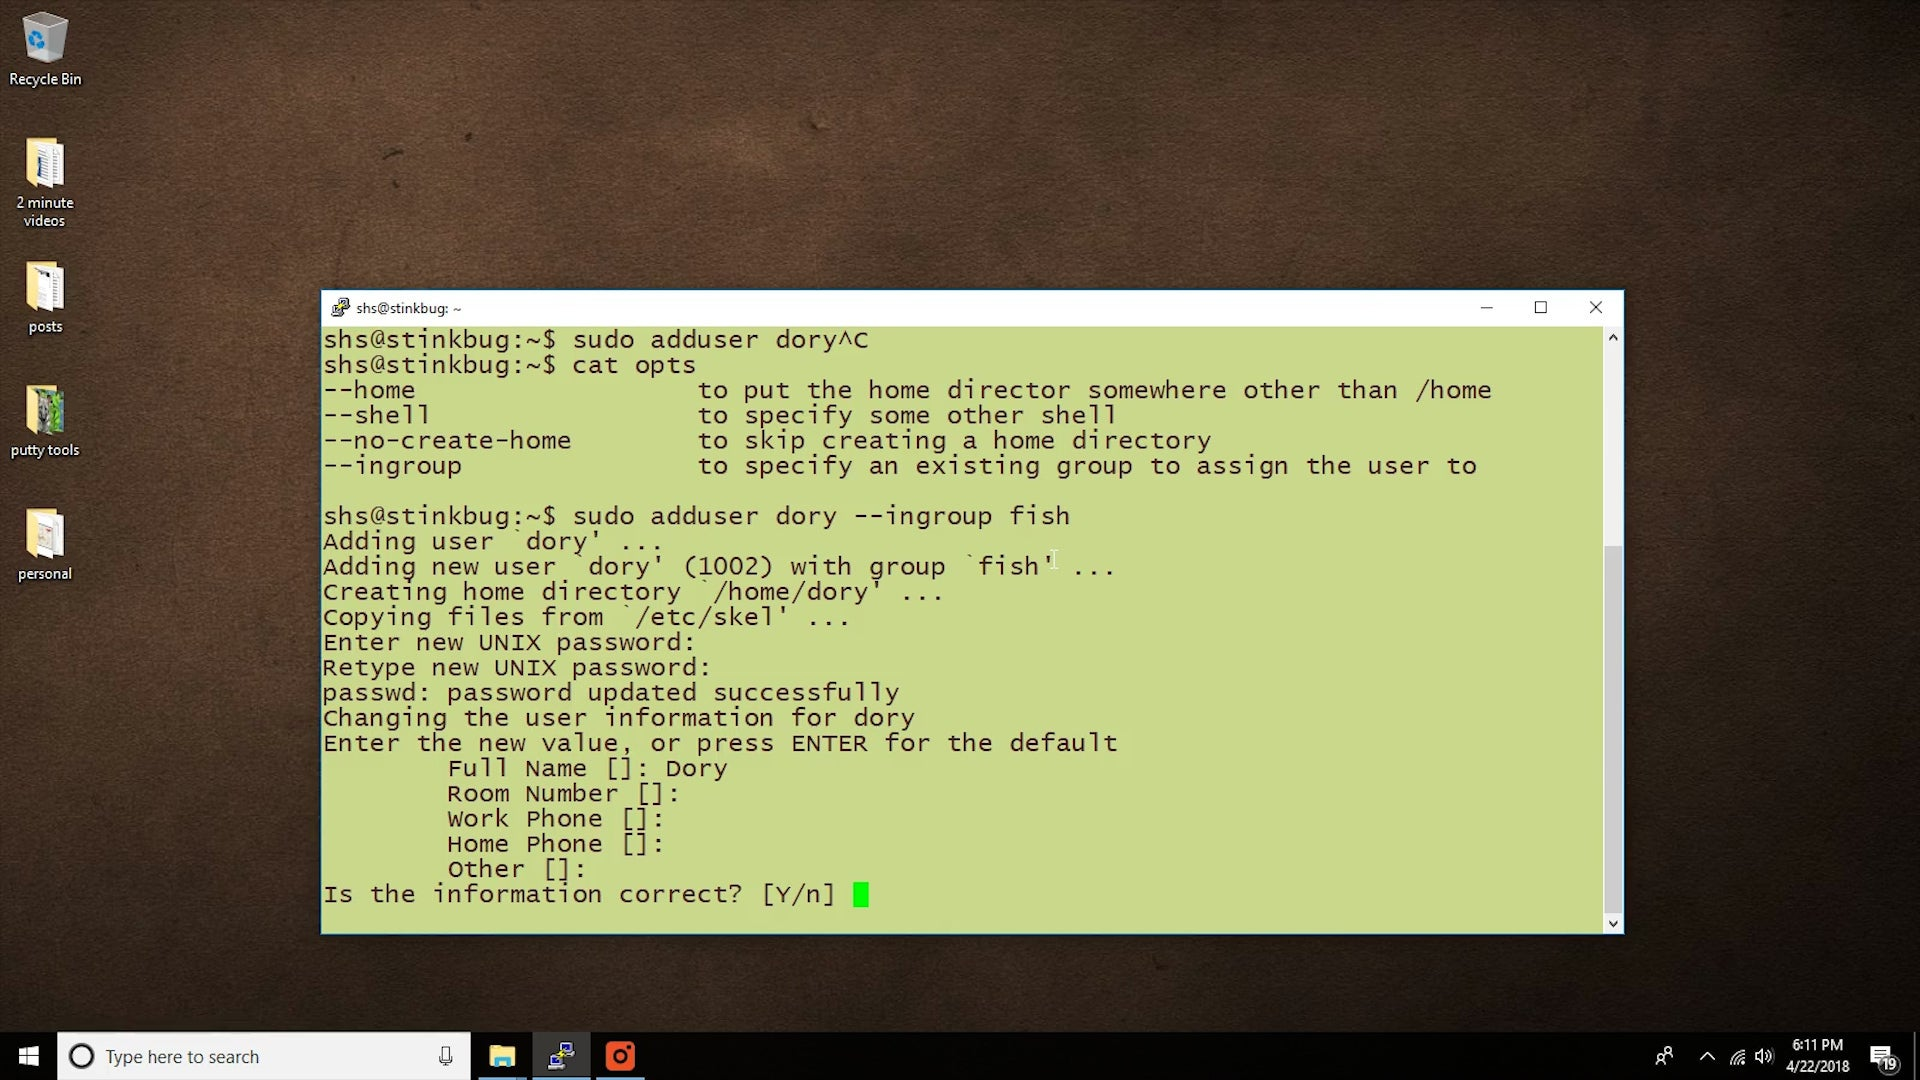 How to share files between Linux and Windows | Network World